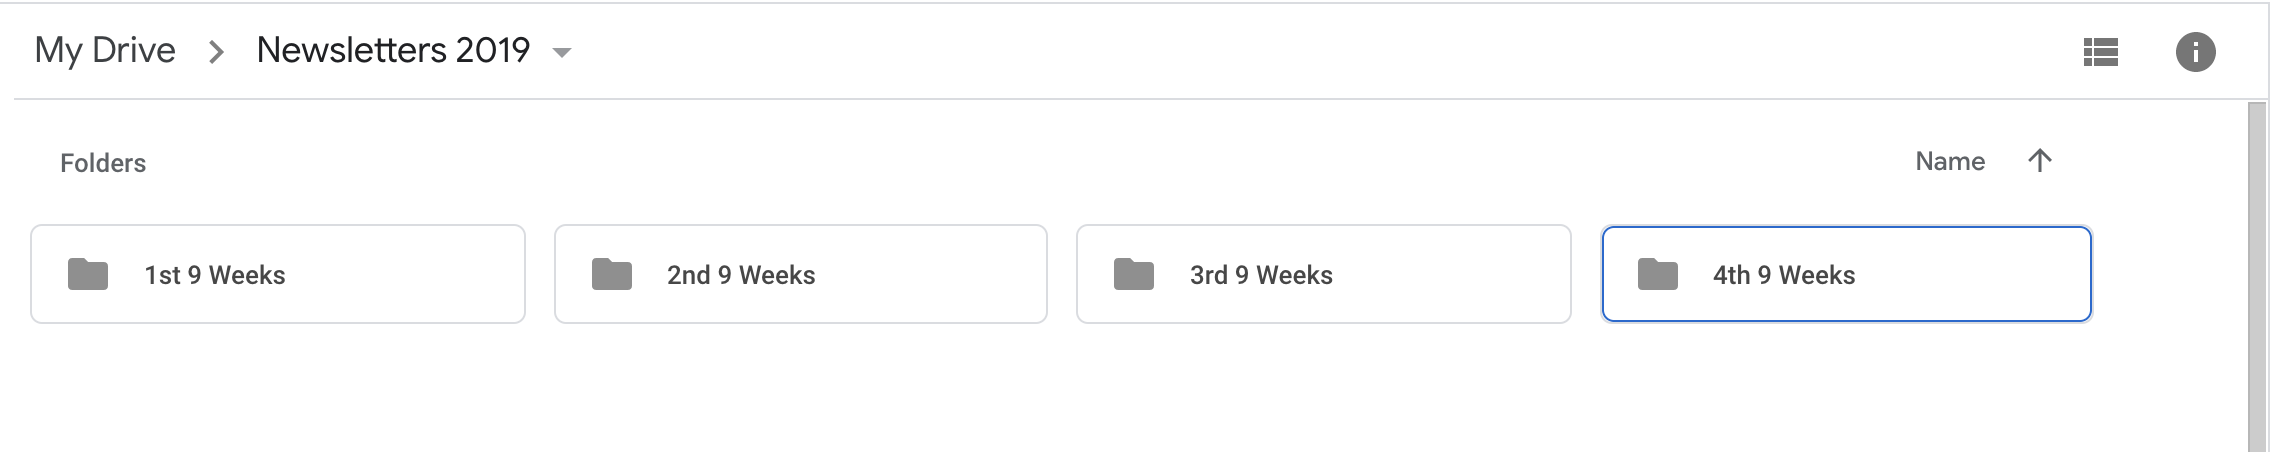 Google Drive folders for 1st, 2nd, 3rd and 4th 9 Weeks